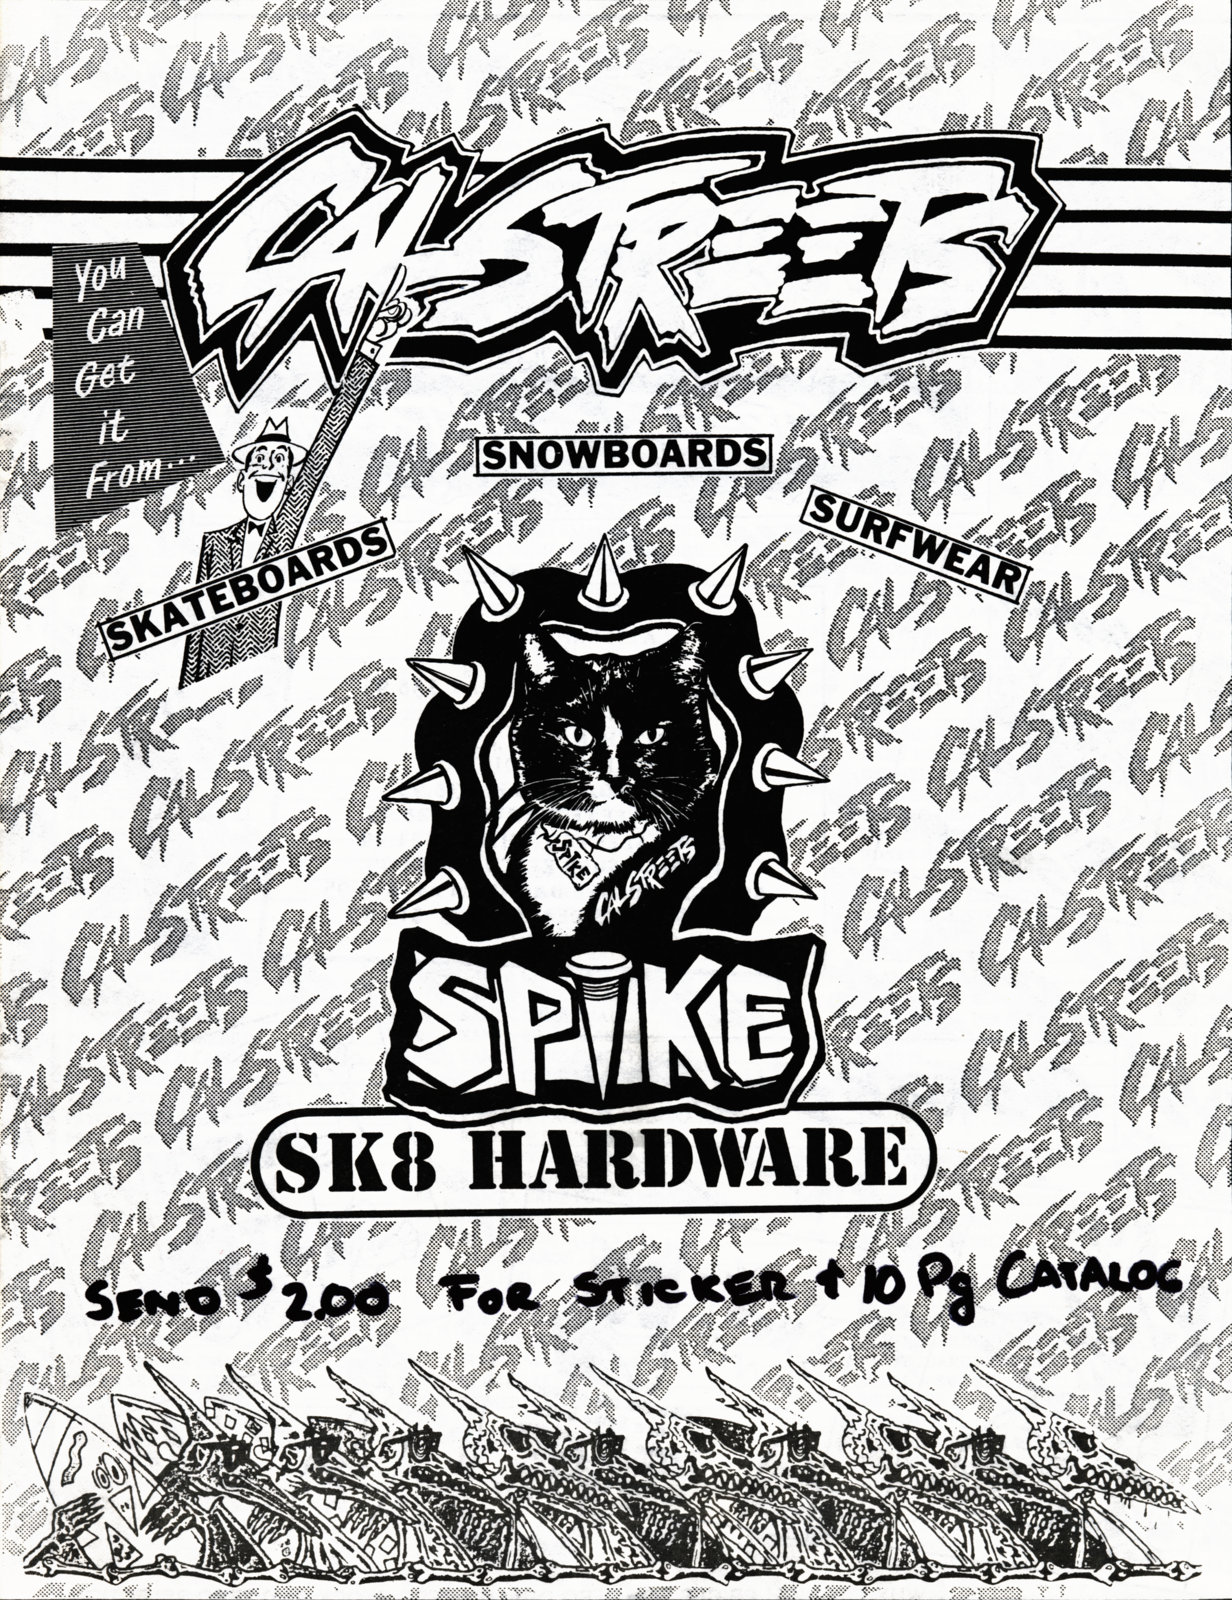 CalStreets Spike Hardware Retail Mailorder-001